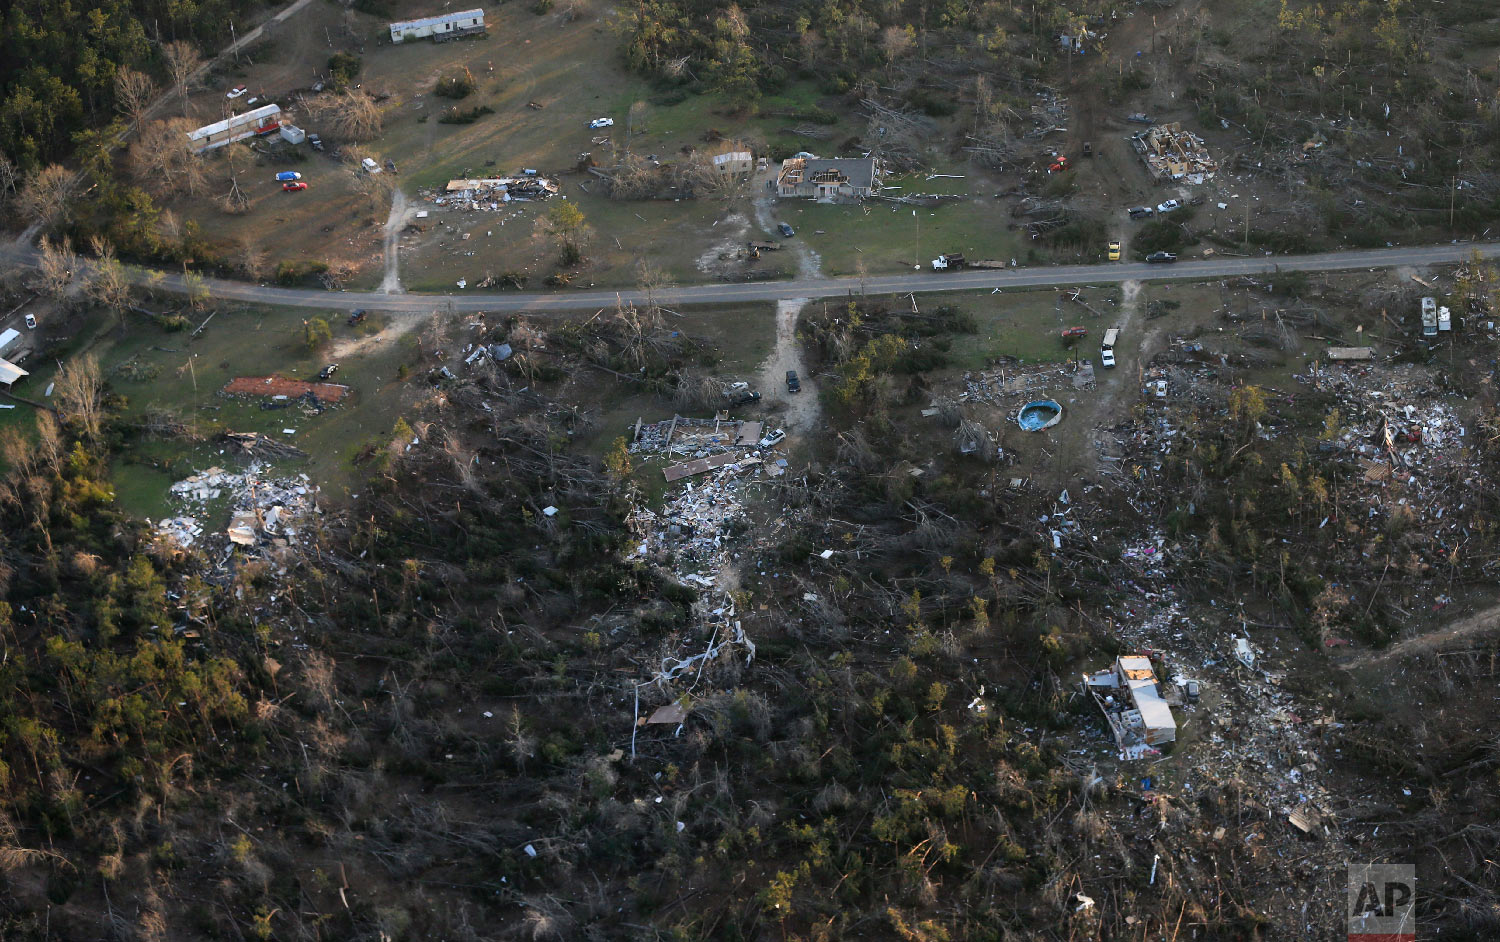 Destruction is seen from tornadoes that came through last night, killing multiple people, in Lee County, Ala., March 4, 2019. (AP Photo/Gerald Herbert)